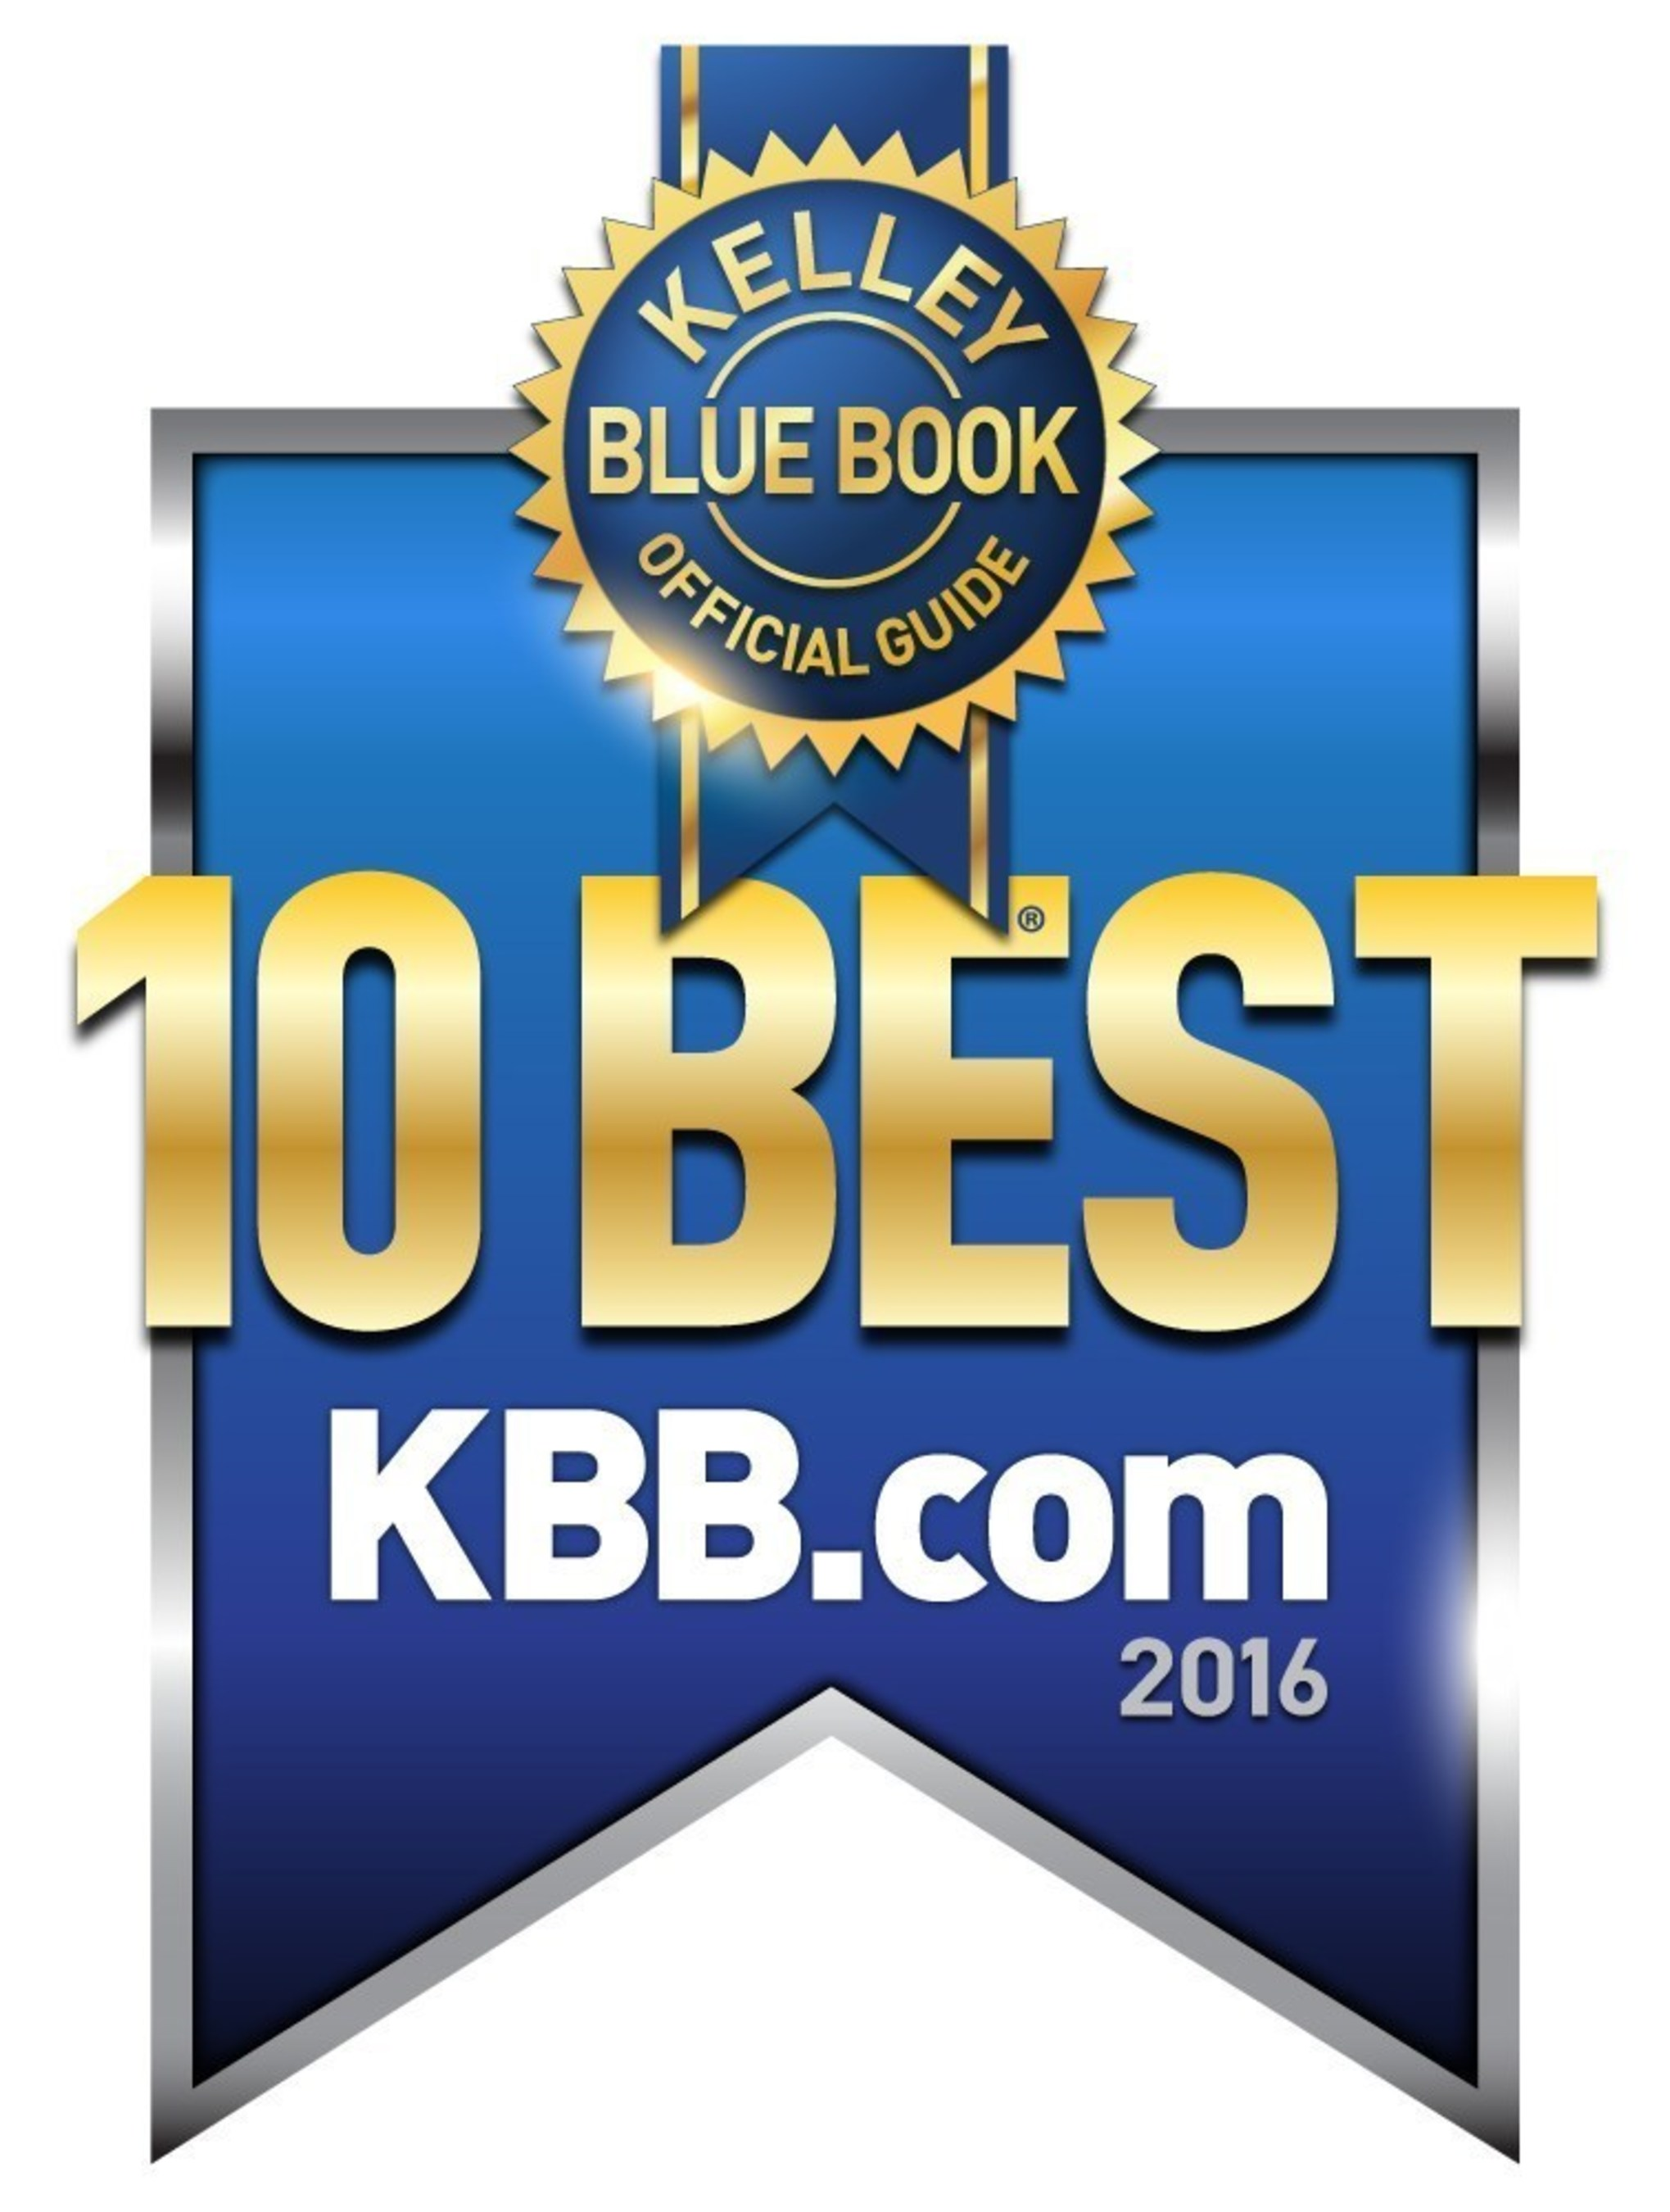 Used Car Prices Kelley Blue Book Inspirational 10 Best Used Cars Under $8 000 for 2016 Named by Kbb